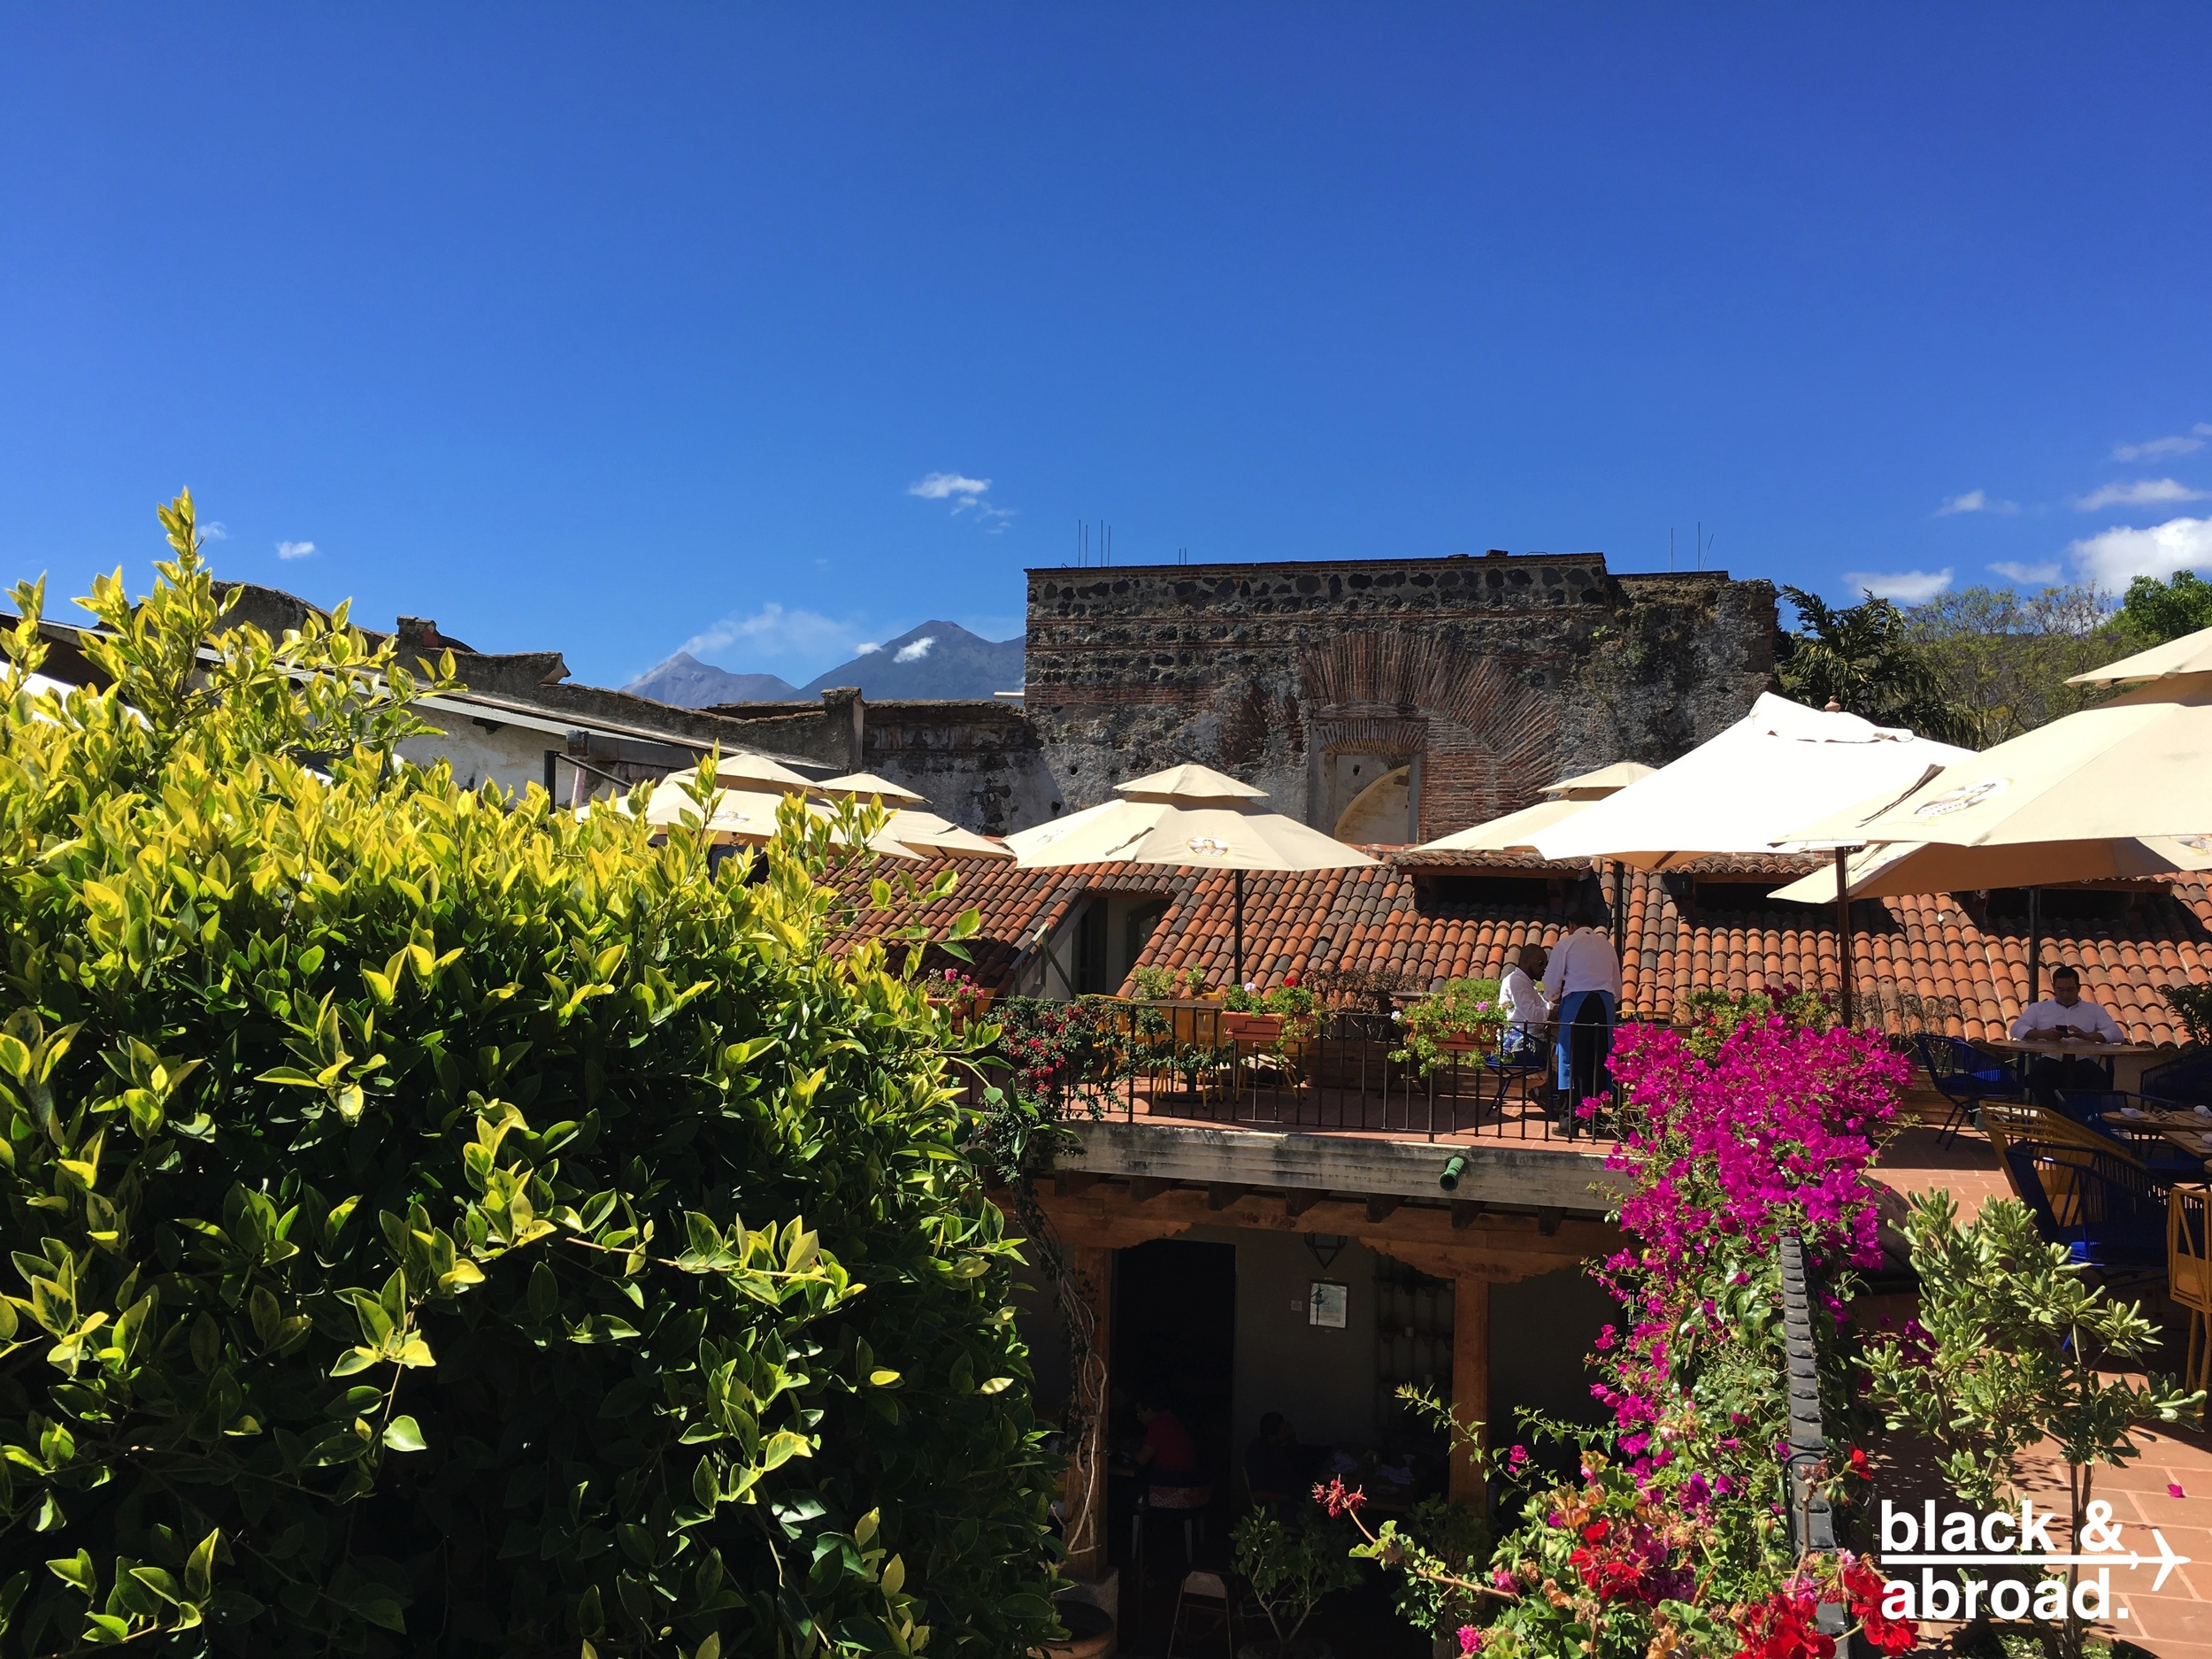 Enjoy a chill weekend lunch on Los Tres Tiempos' terrace.